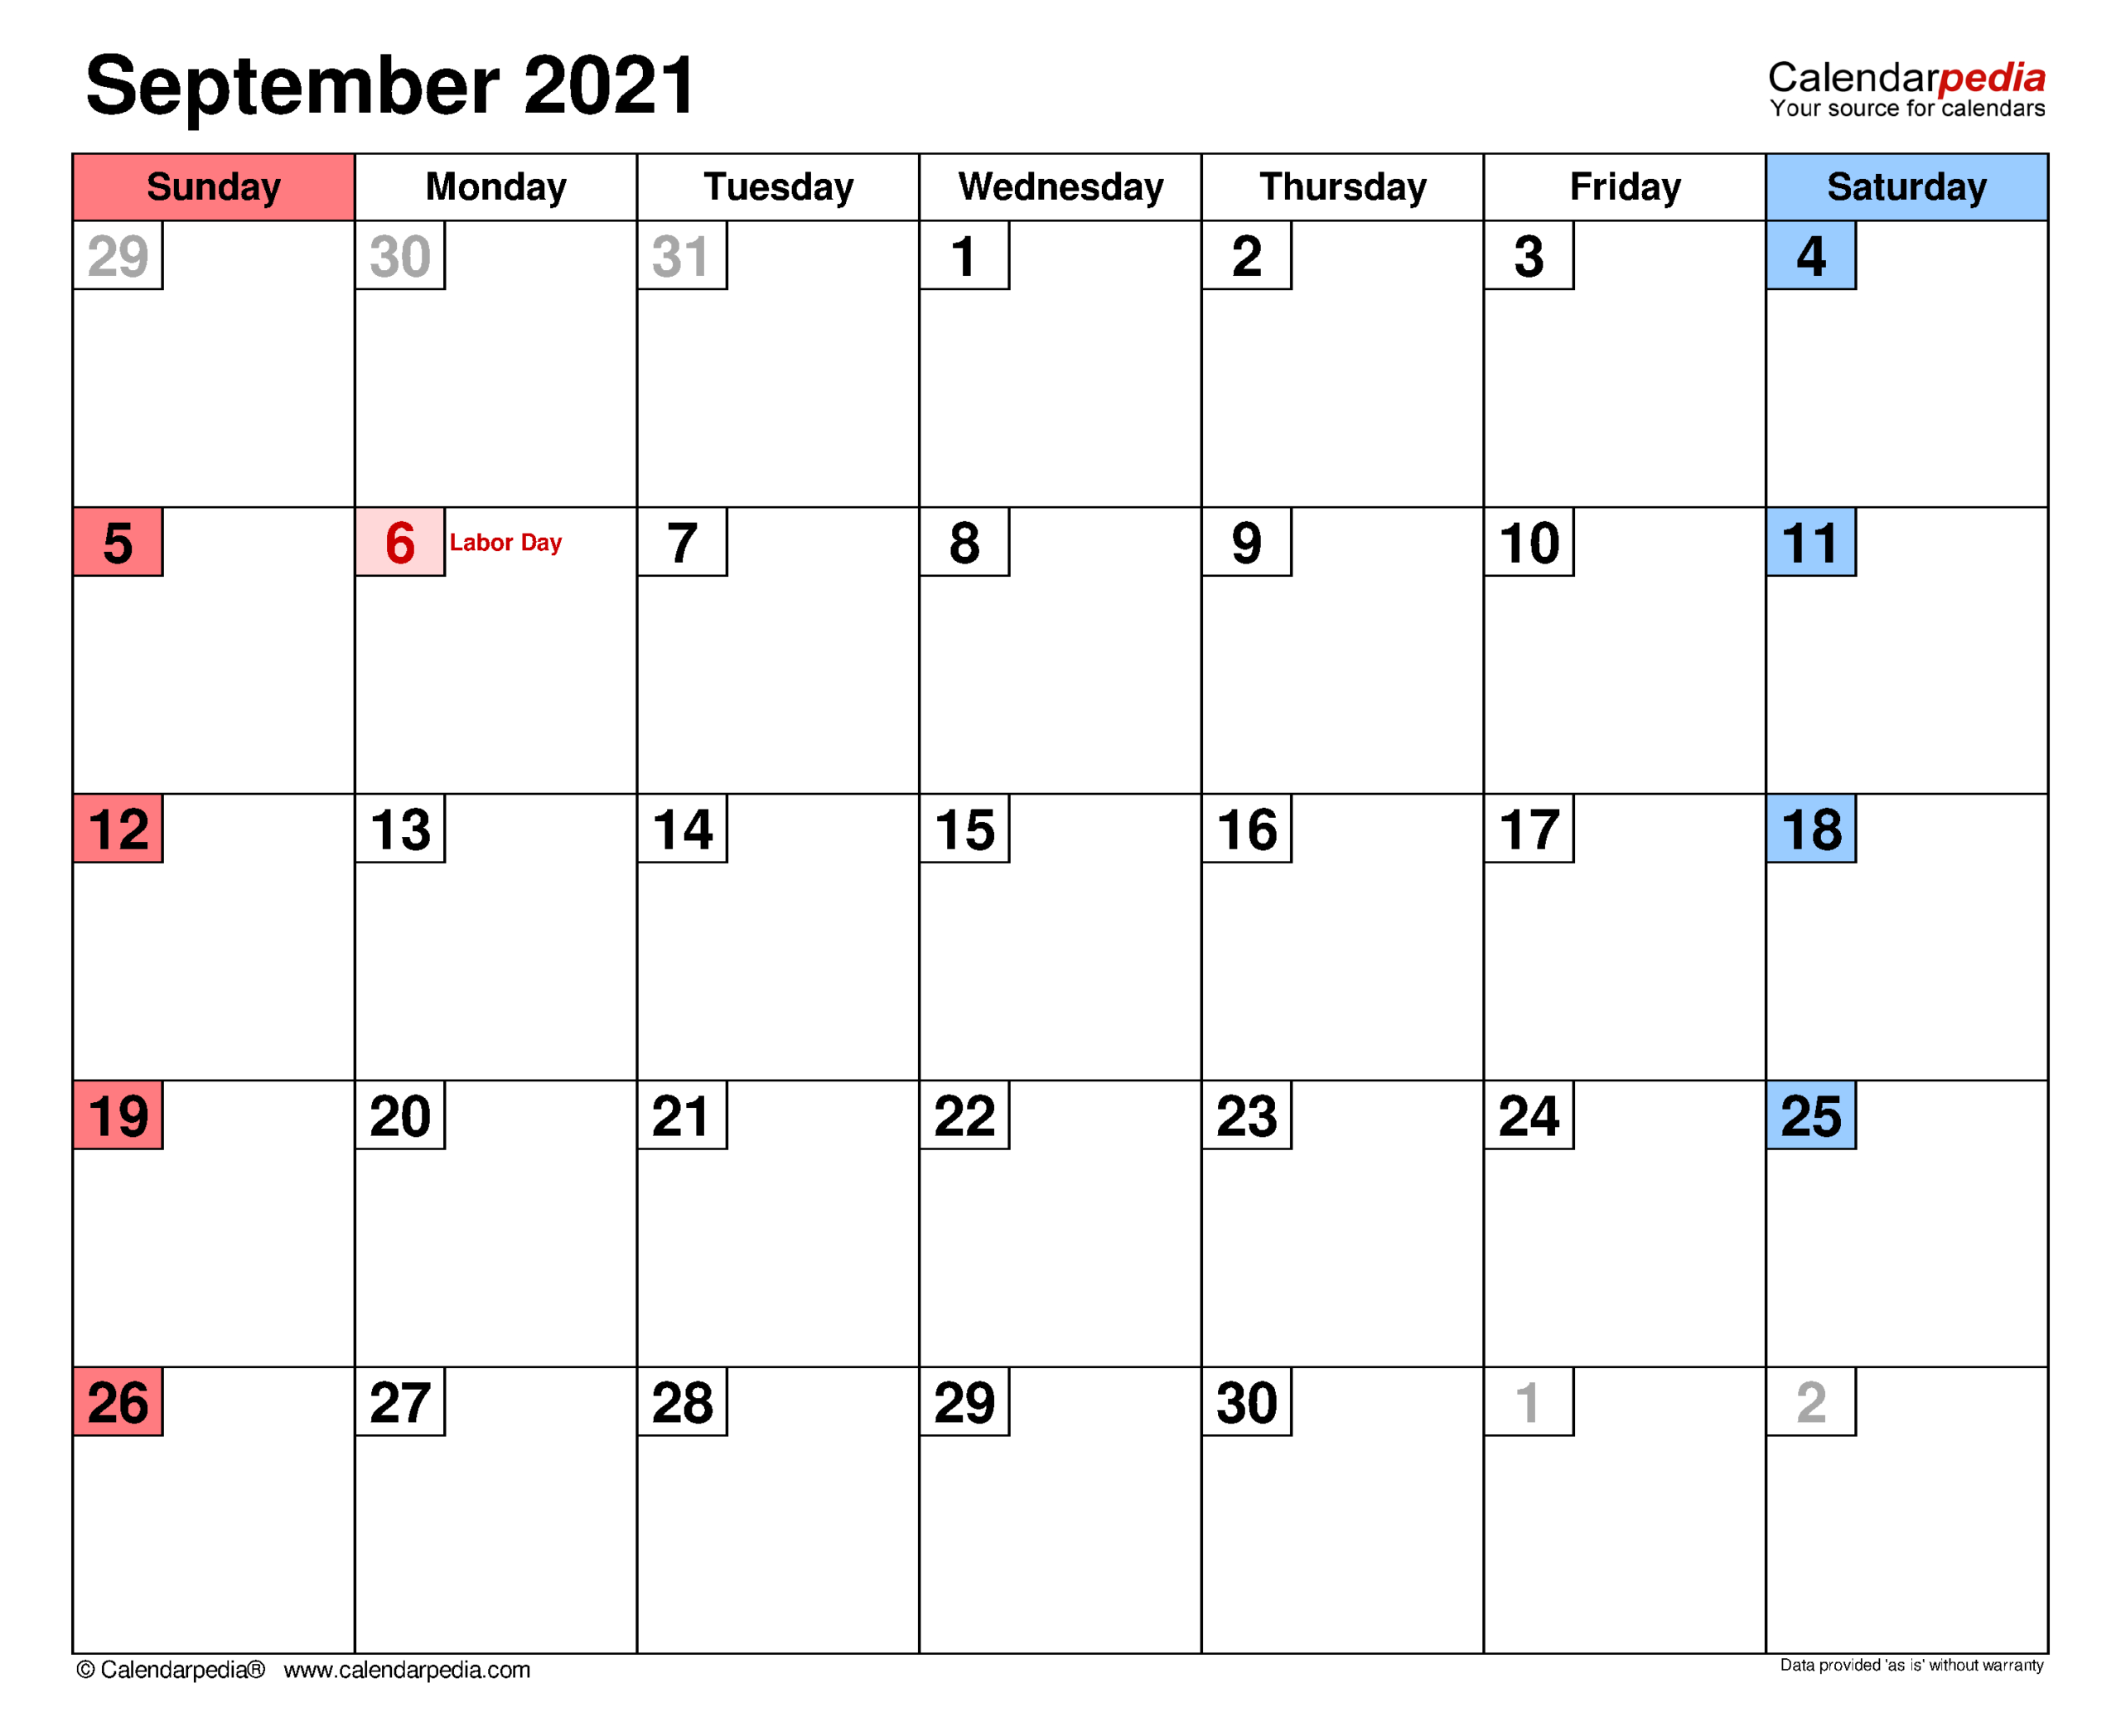 September 2021 - Calendar Templates For Word, Excel And Pdf